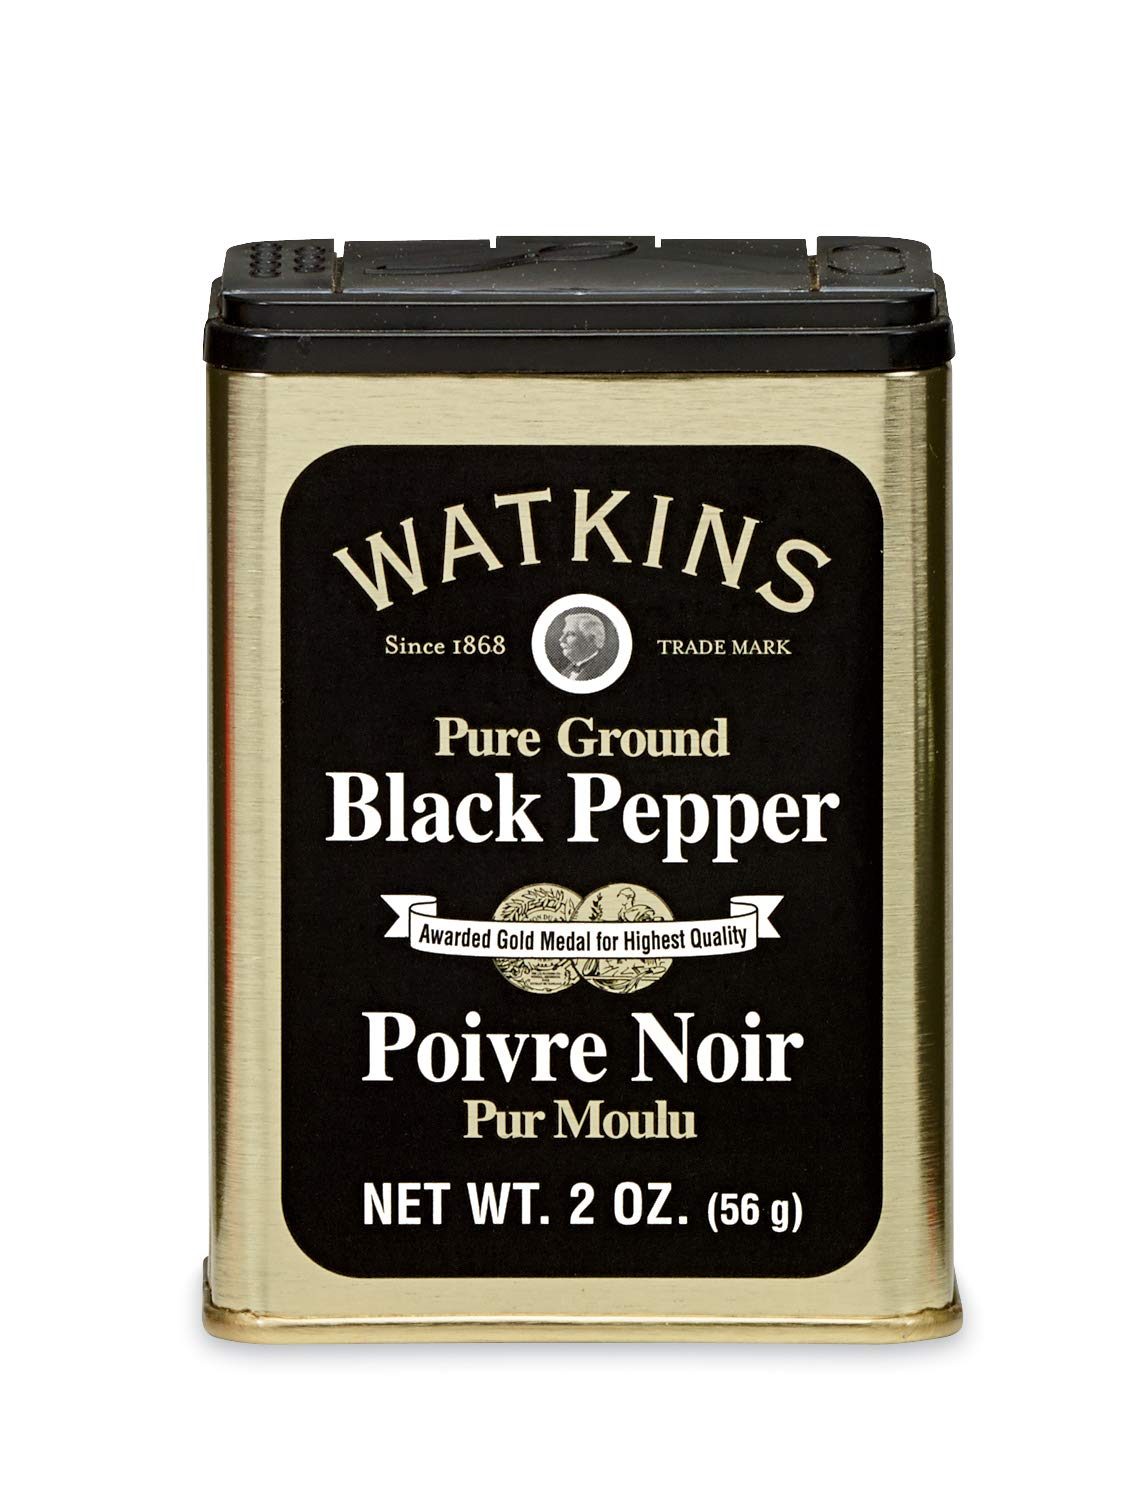 Watkins All Natural Gourmet Spice Tin, Granulated Black Pepper, 2 Ounce (Pack of 12)